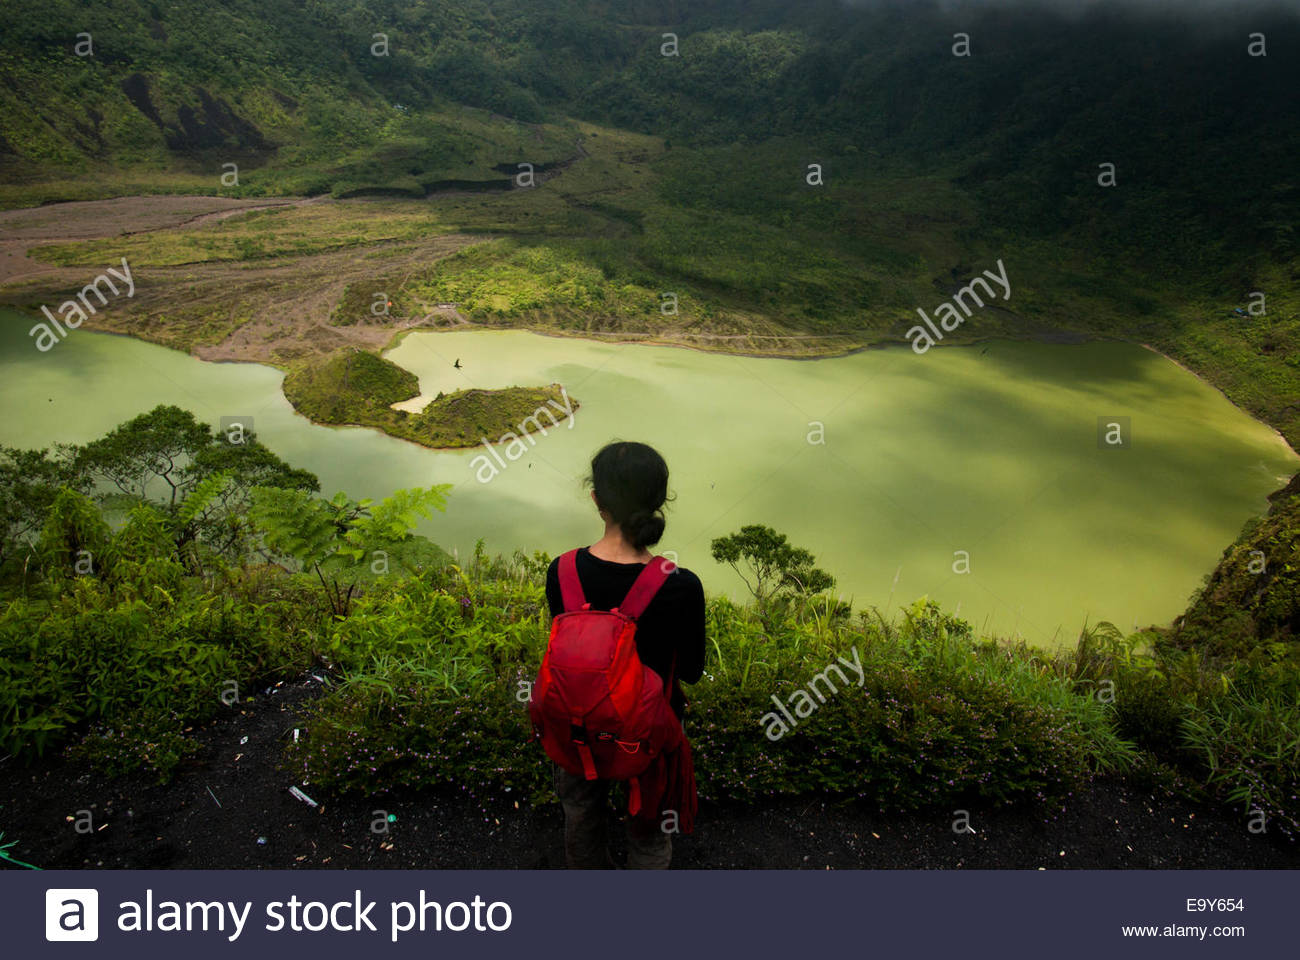 Female climber examines the caldera of Mount Galunggung volcano in West Java, Indonesia. © Reynold Sumayku - Stock Image